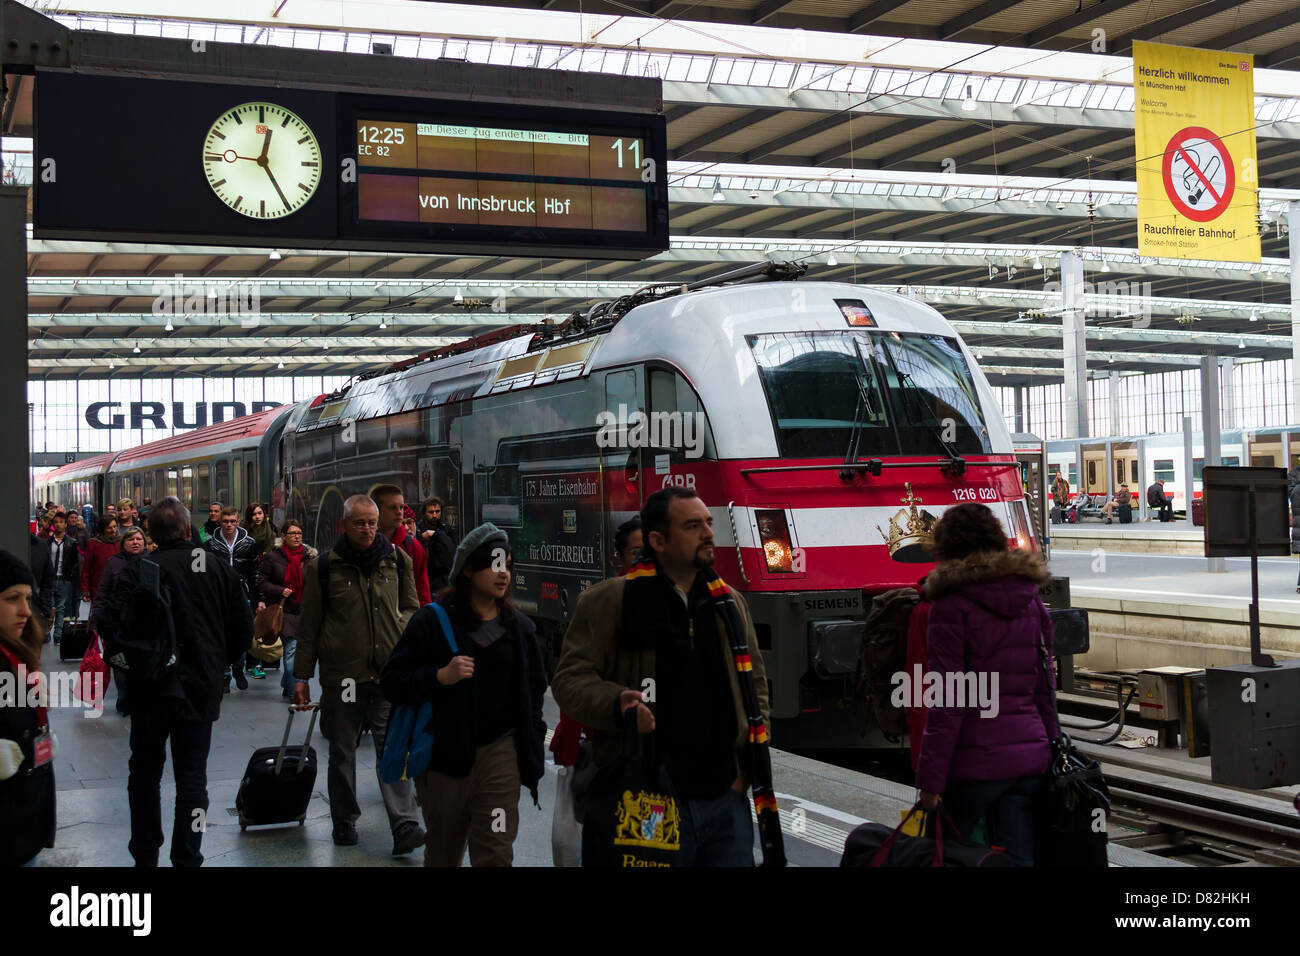 Large amount of people on the train platform at Hauptbahnhof Mainstation, Railway Station, Munich Germany - Stock Image